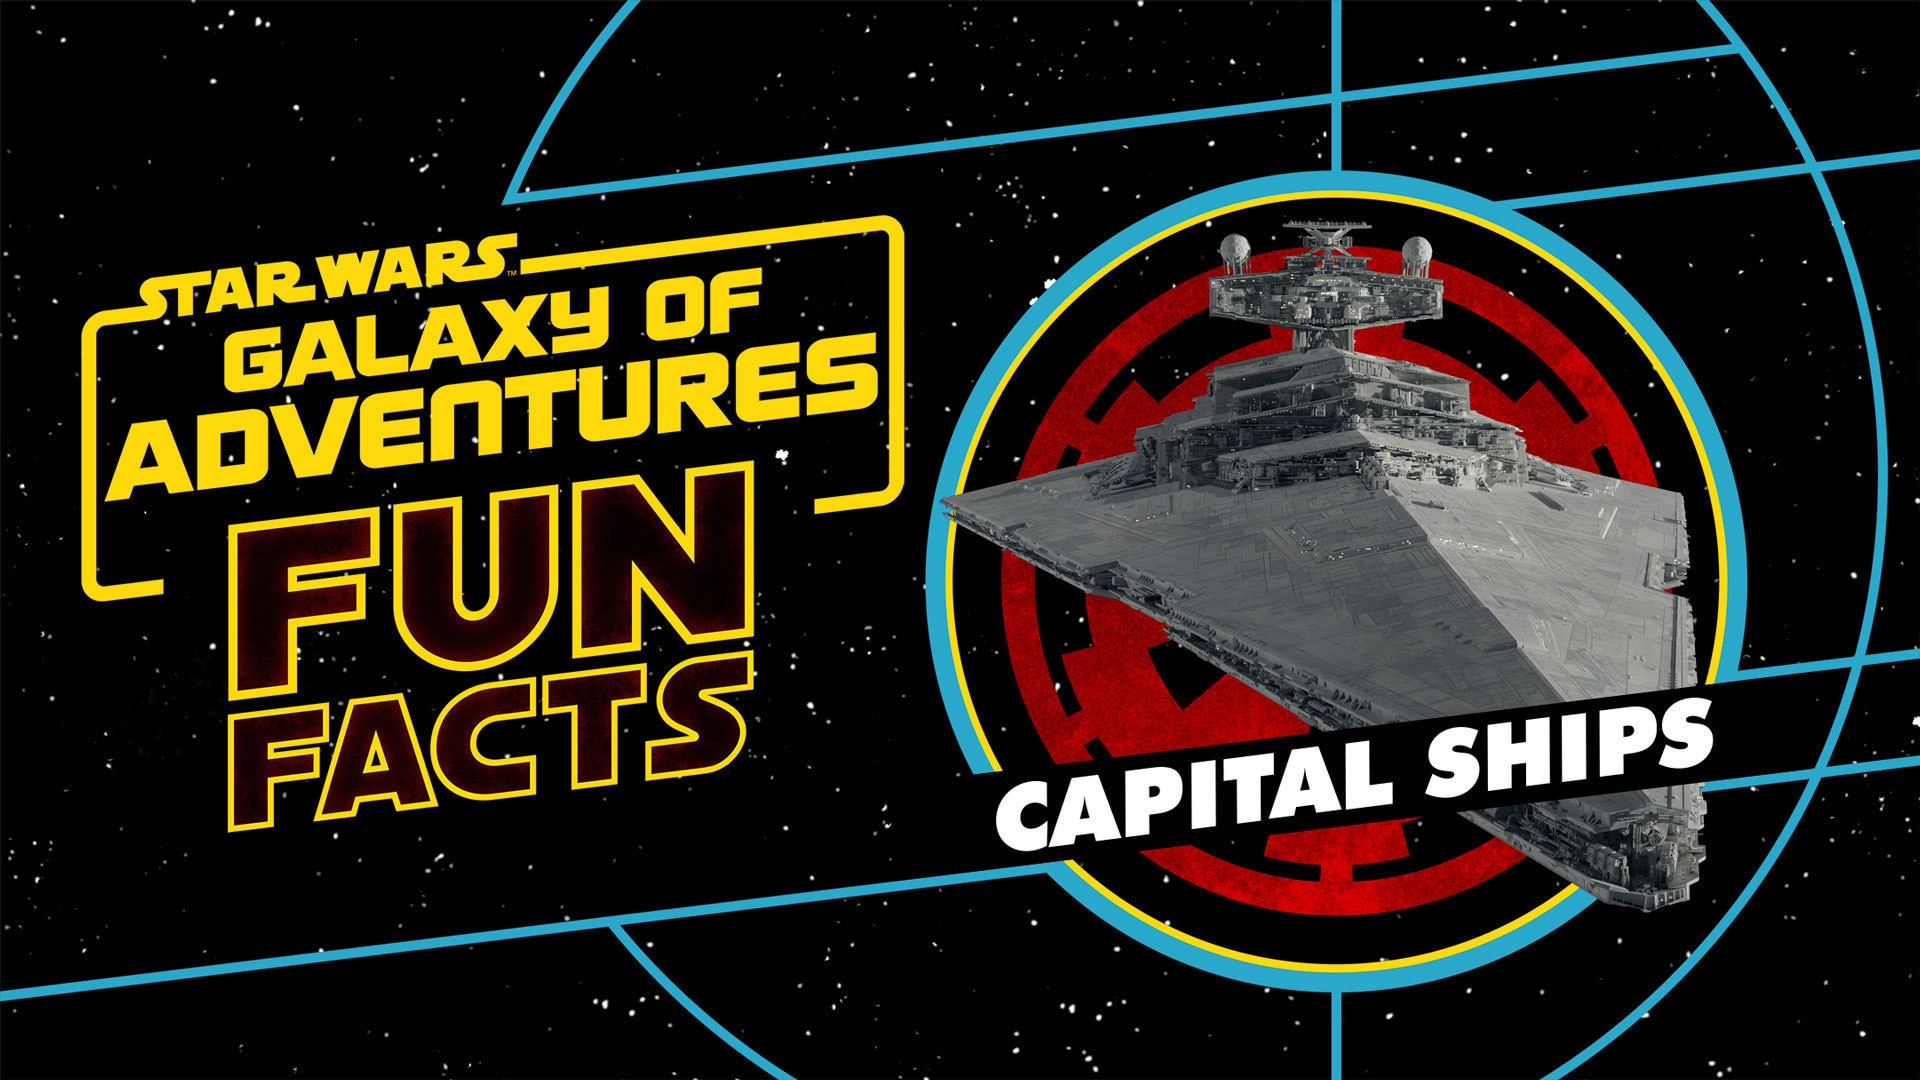 Capital Ships | Star Wars Galaxy of Adventures Fun Facts